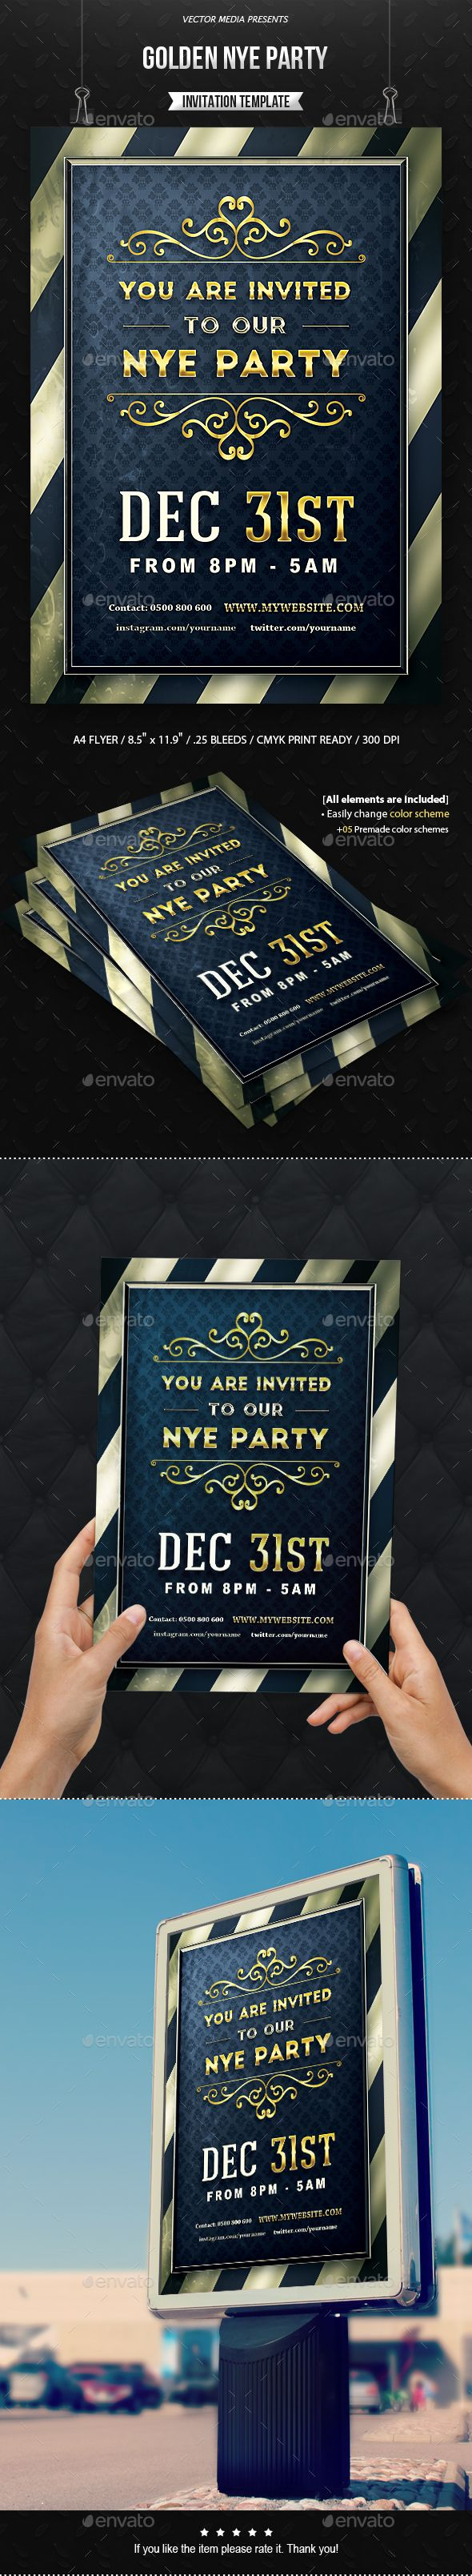 Golden NYE Party - Invitation